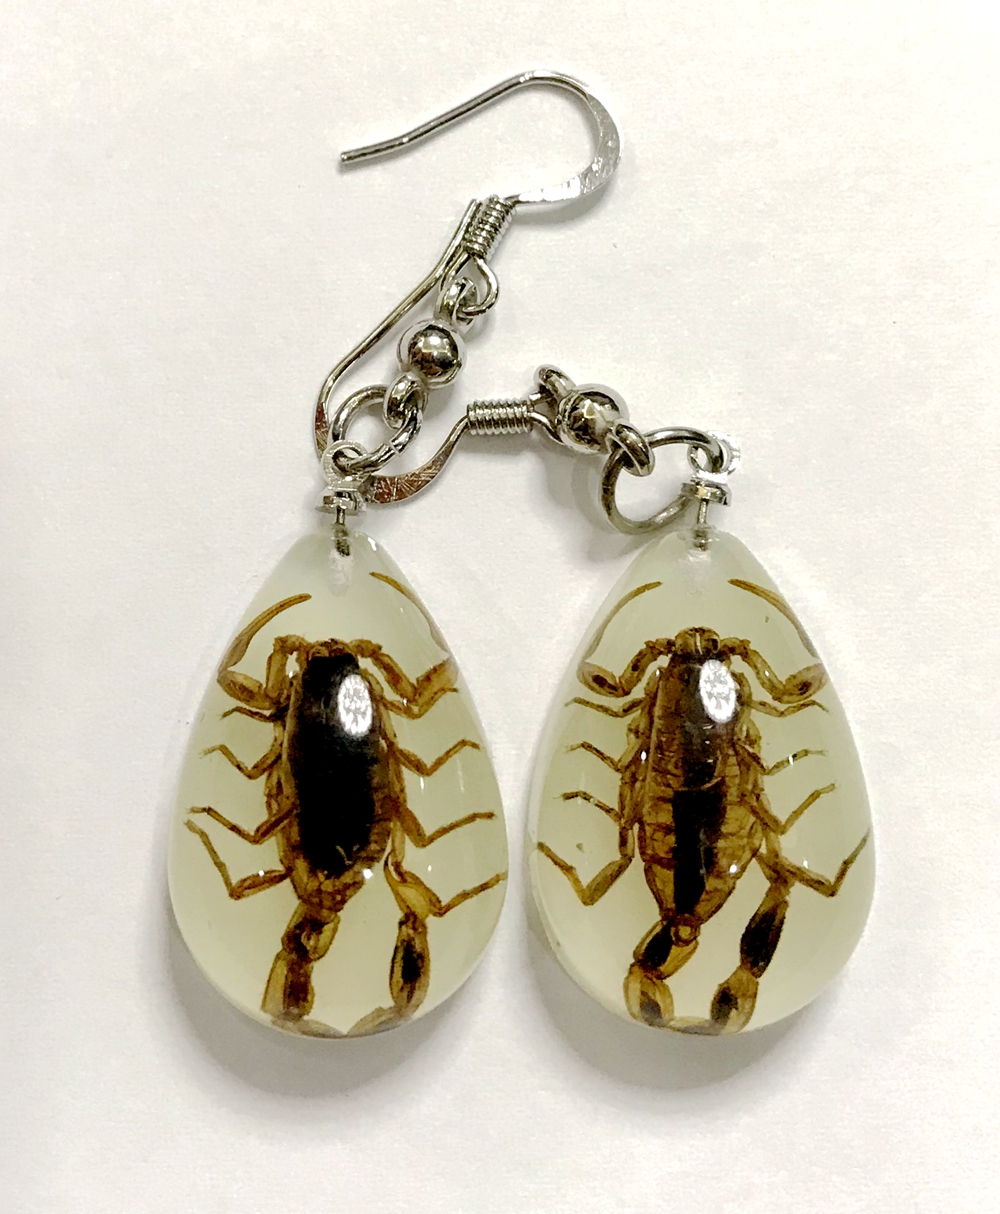 YQTDMY Earrings Drop-Entomology Dangle Fashion Natural-Scorpion Real-Insect-Newest